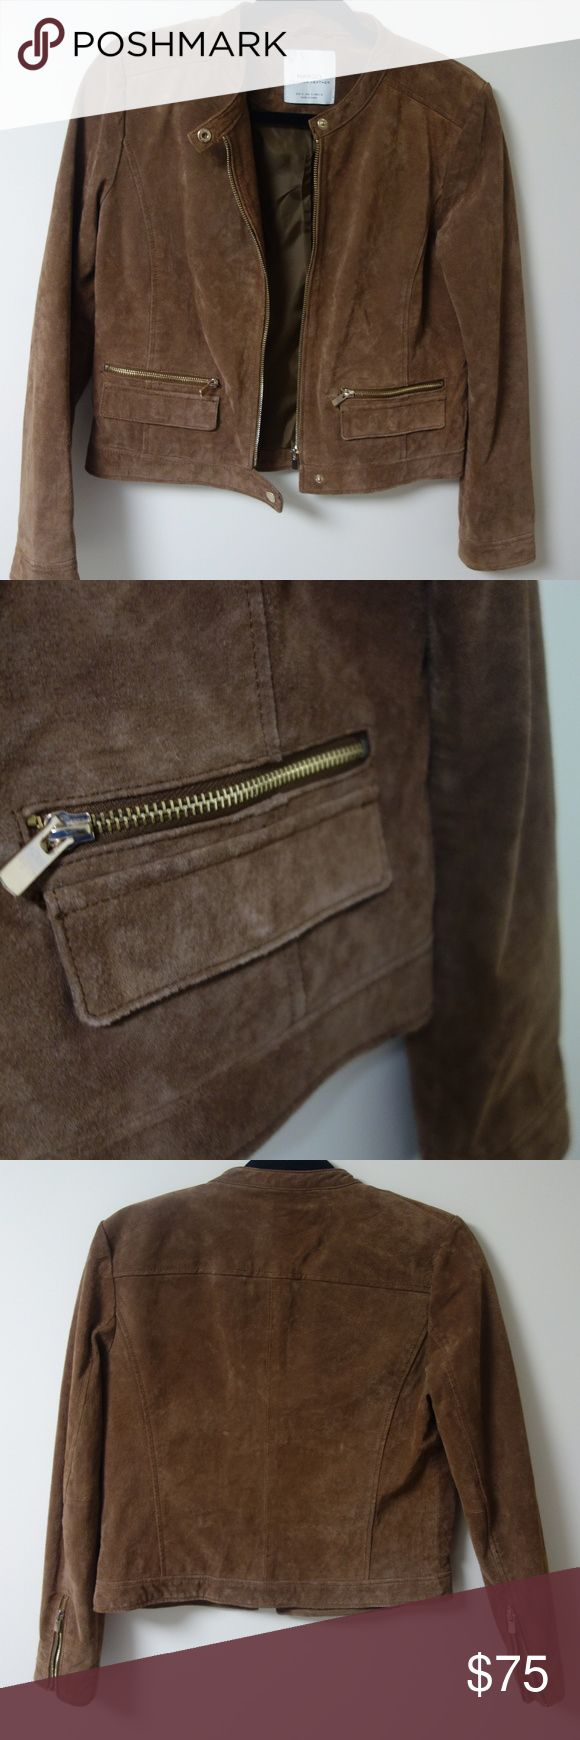 Real Suede - Brown Mango Jacket with Gold Details This supple, suede jacket has a structured look and gold zippers and buttons. Nearly new.  Genuine leather. Mango Jackets & Coats